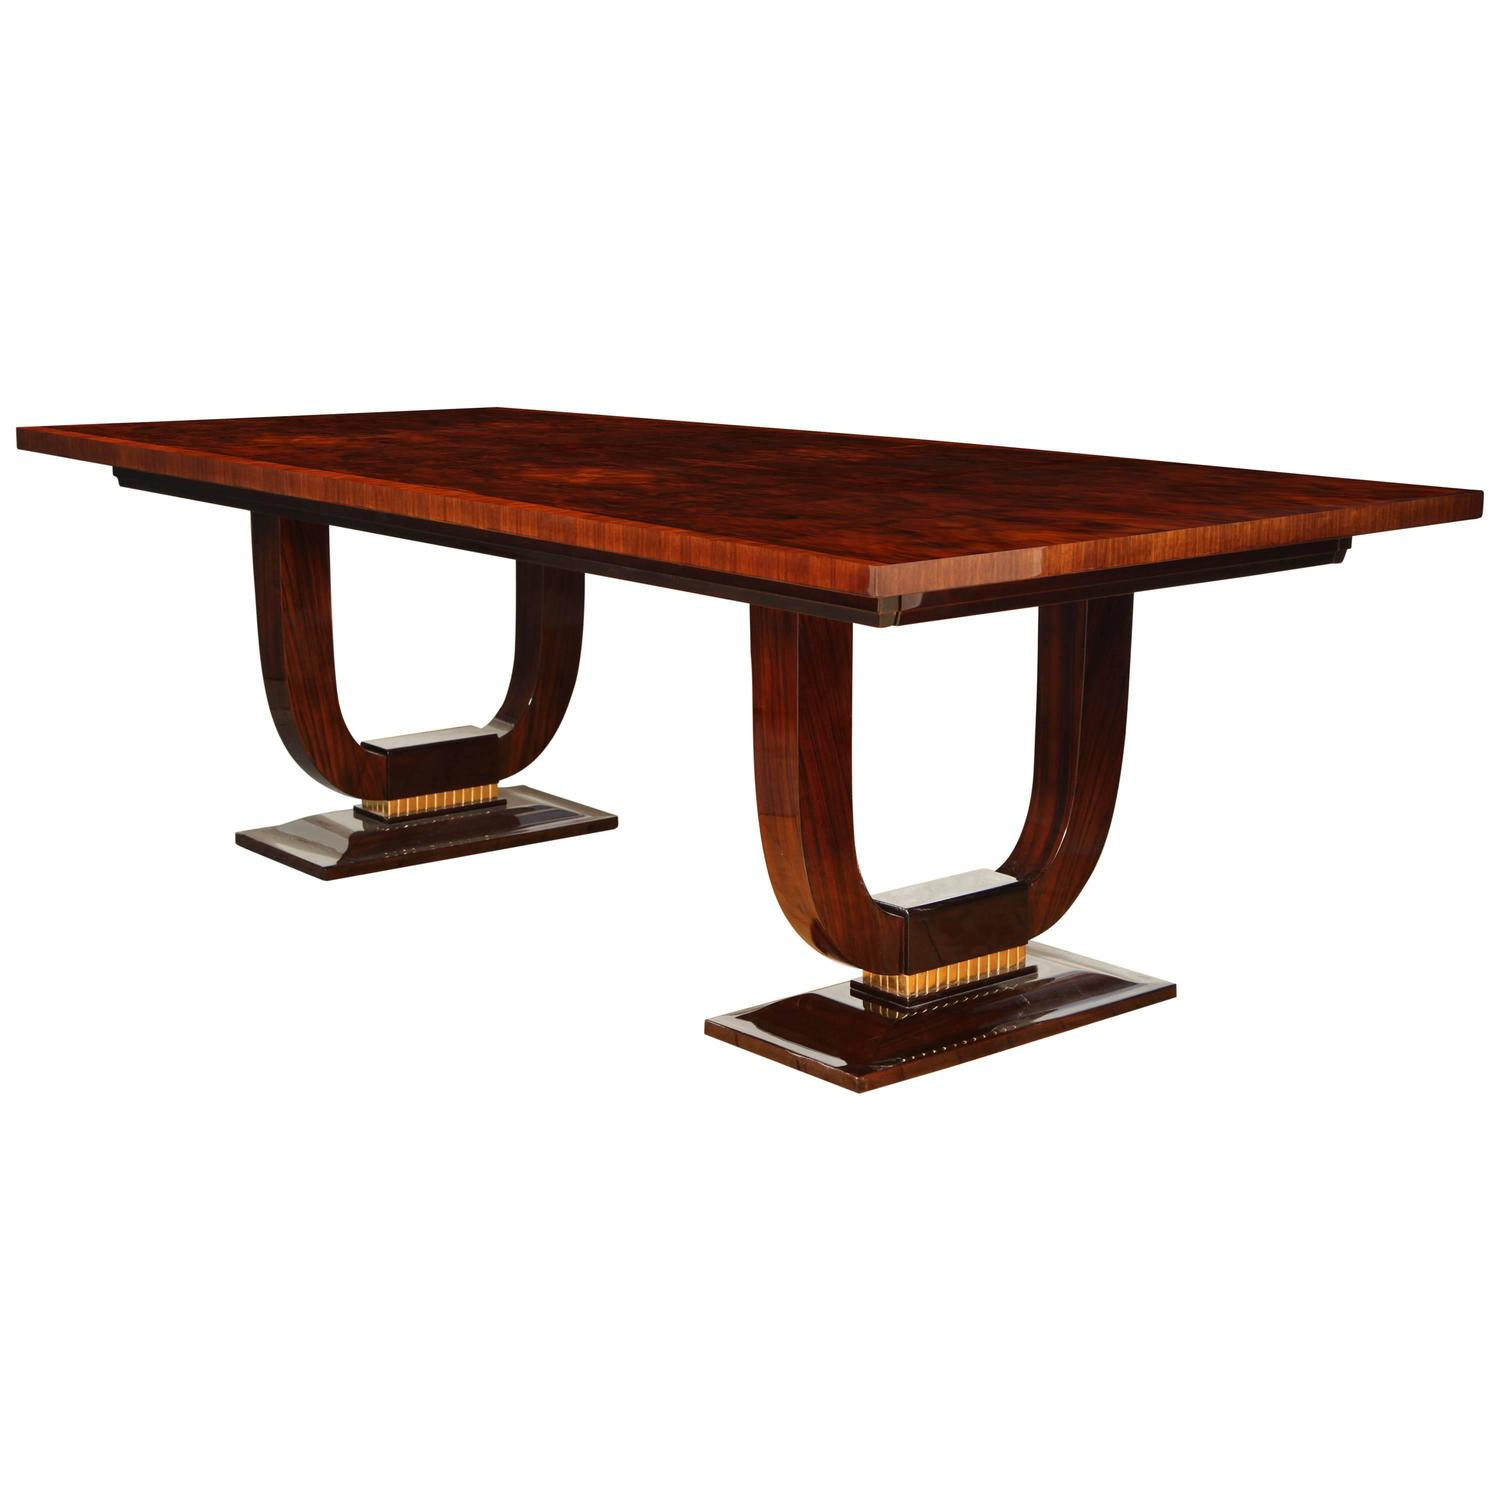 Art deco dining table at 1stdibs for Artistic dining room tables